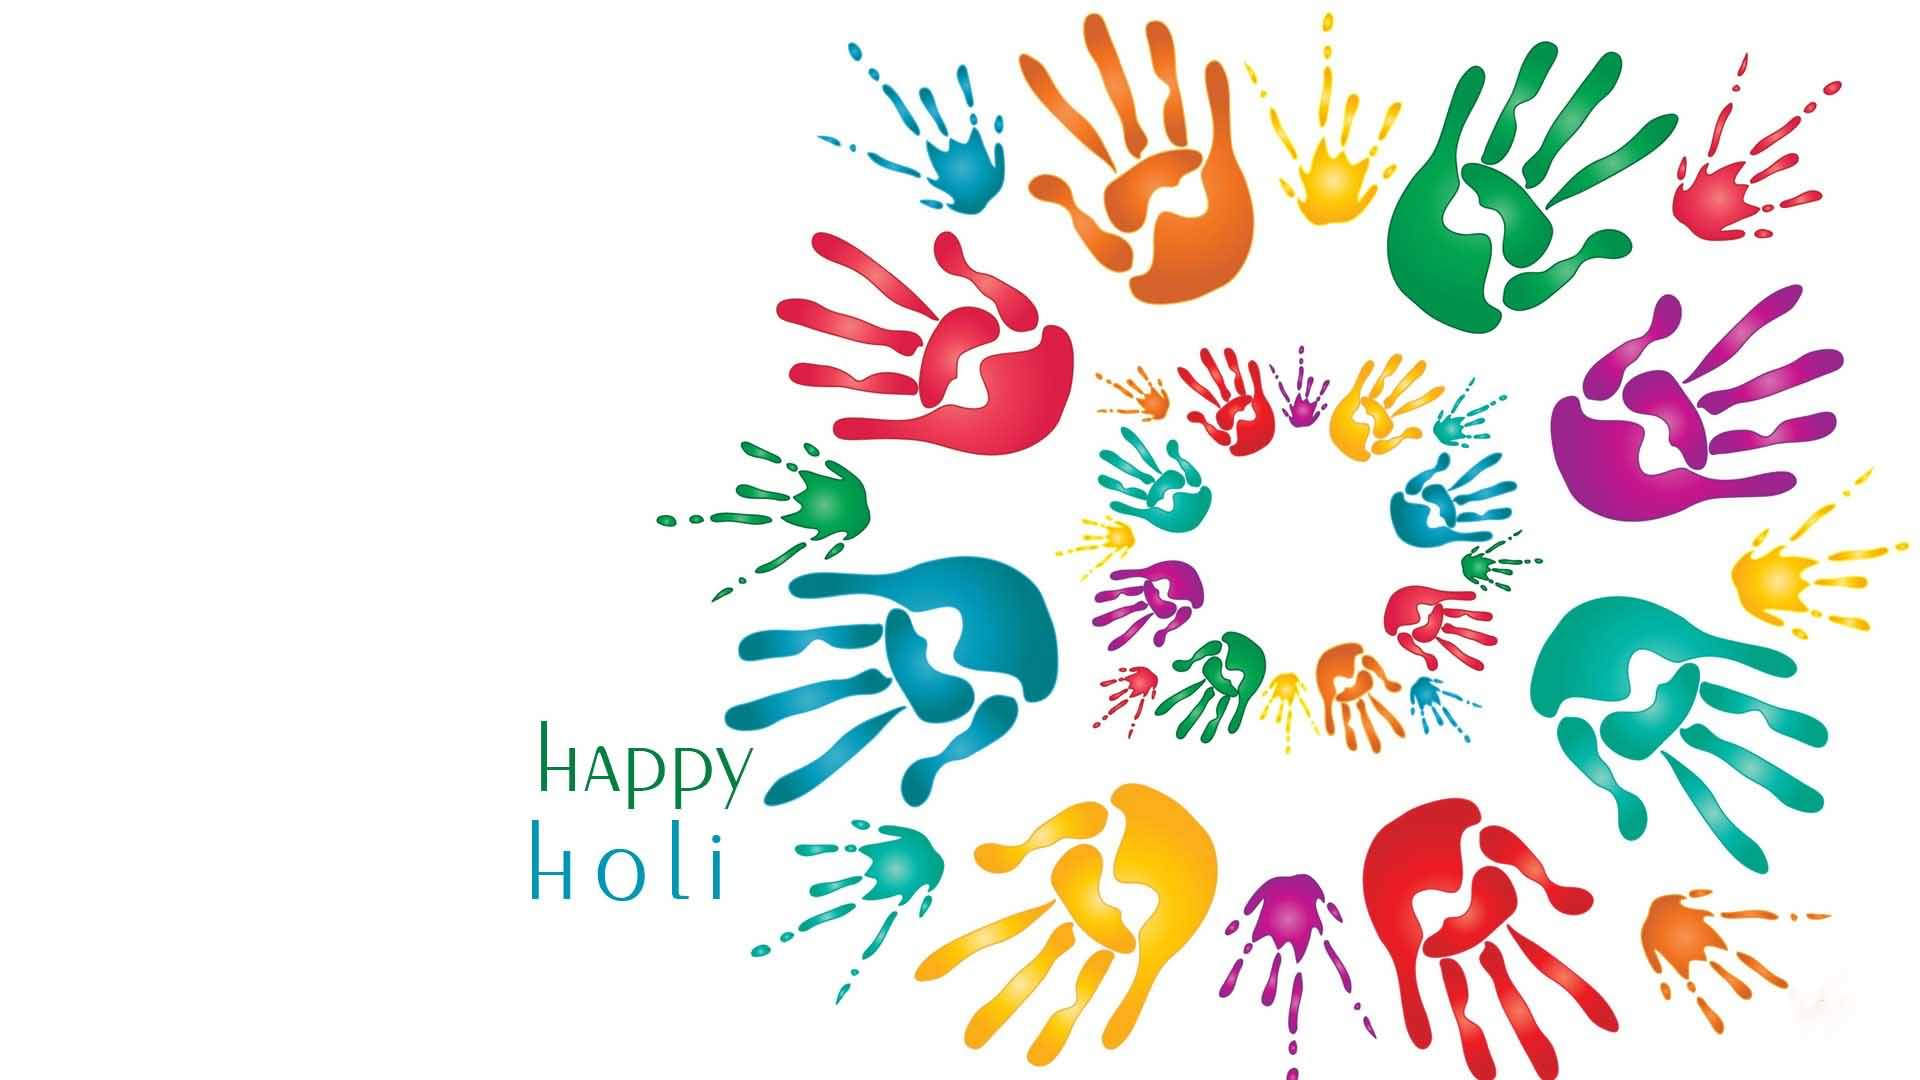 51-Holi Wishes